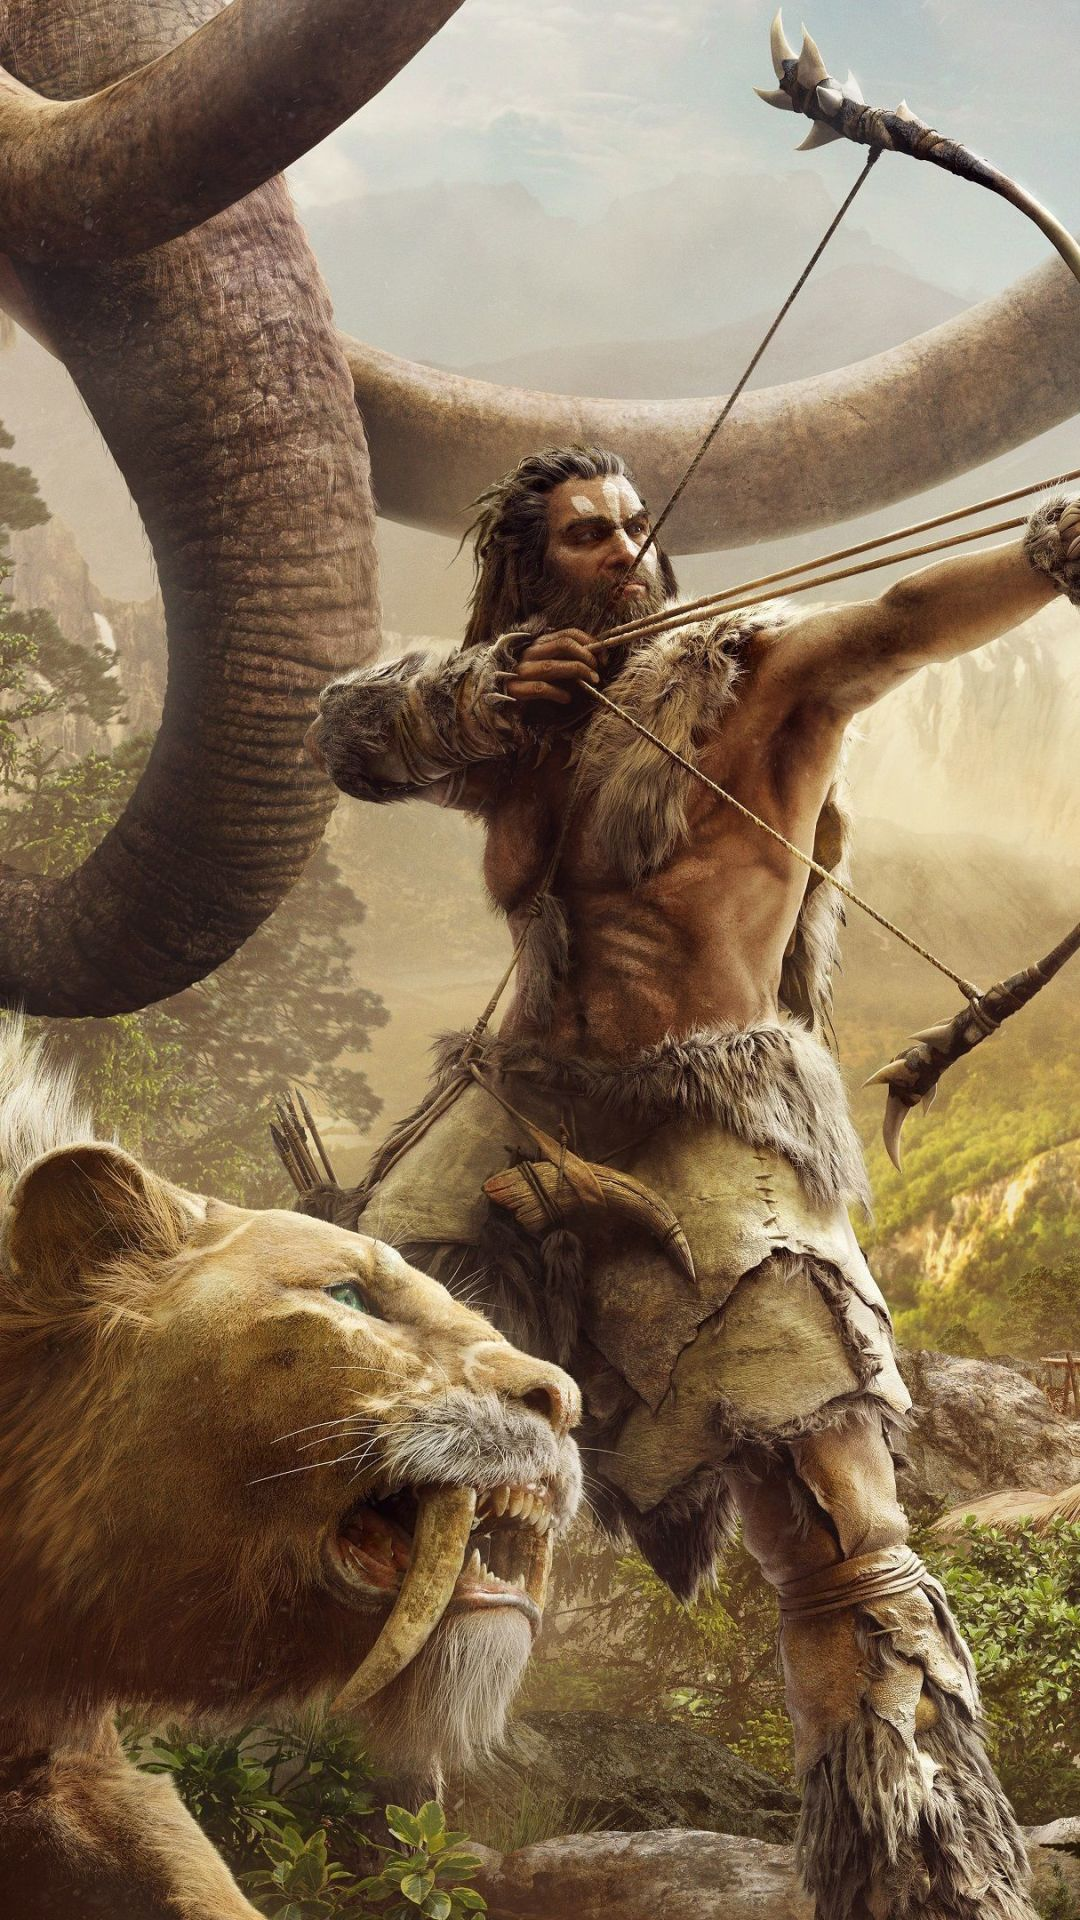 Download This Wallpaper Iphone 6 Video Game Far Cry Primal